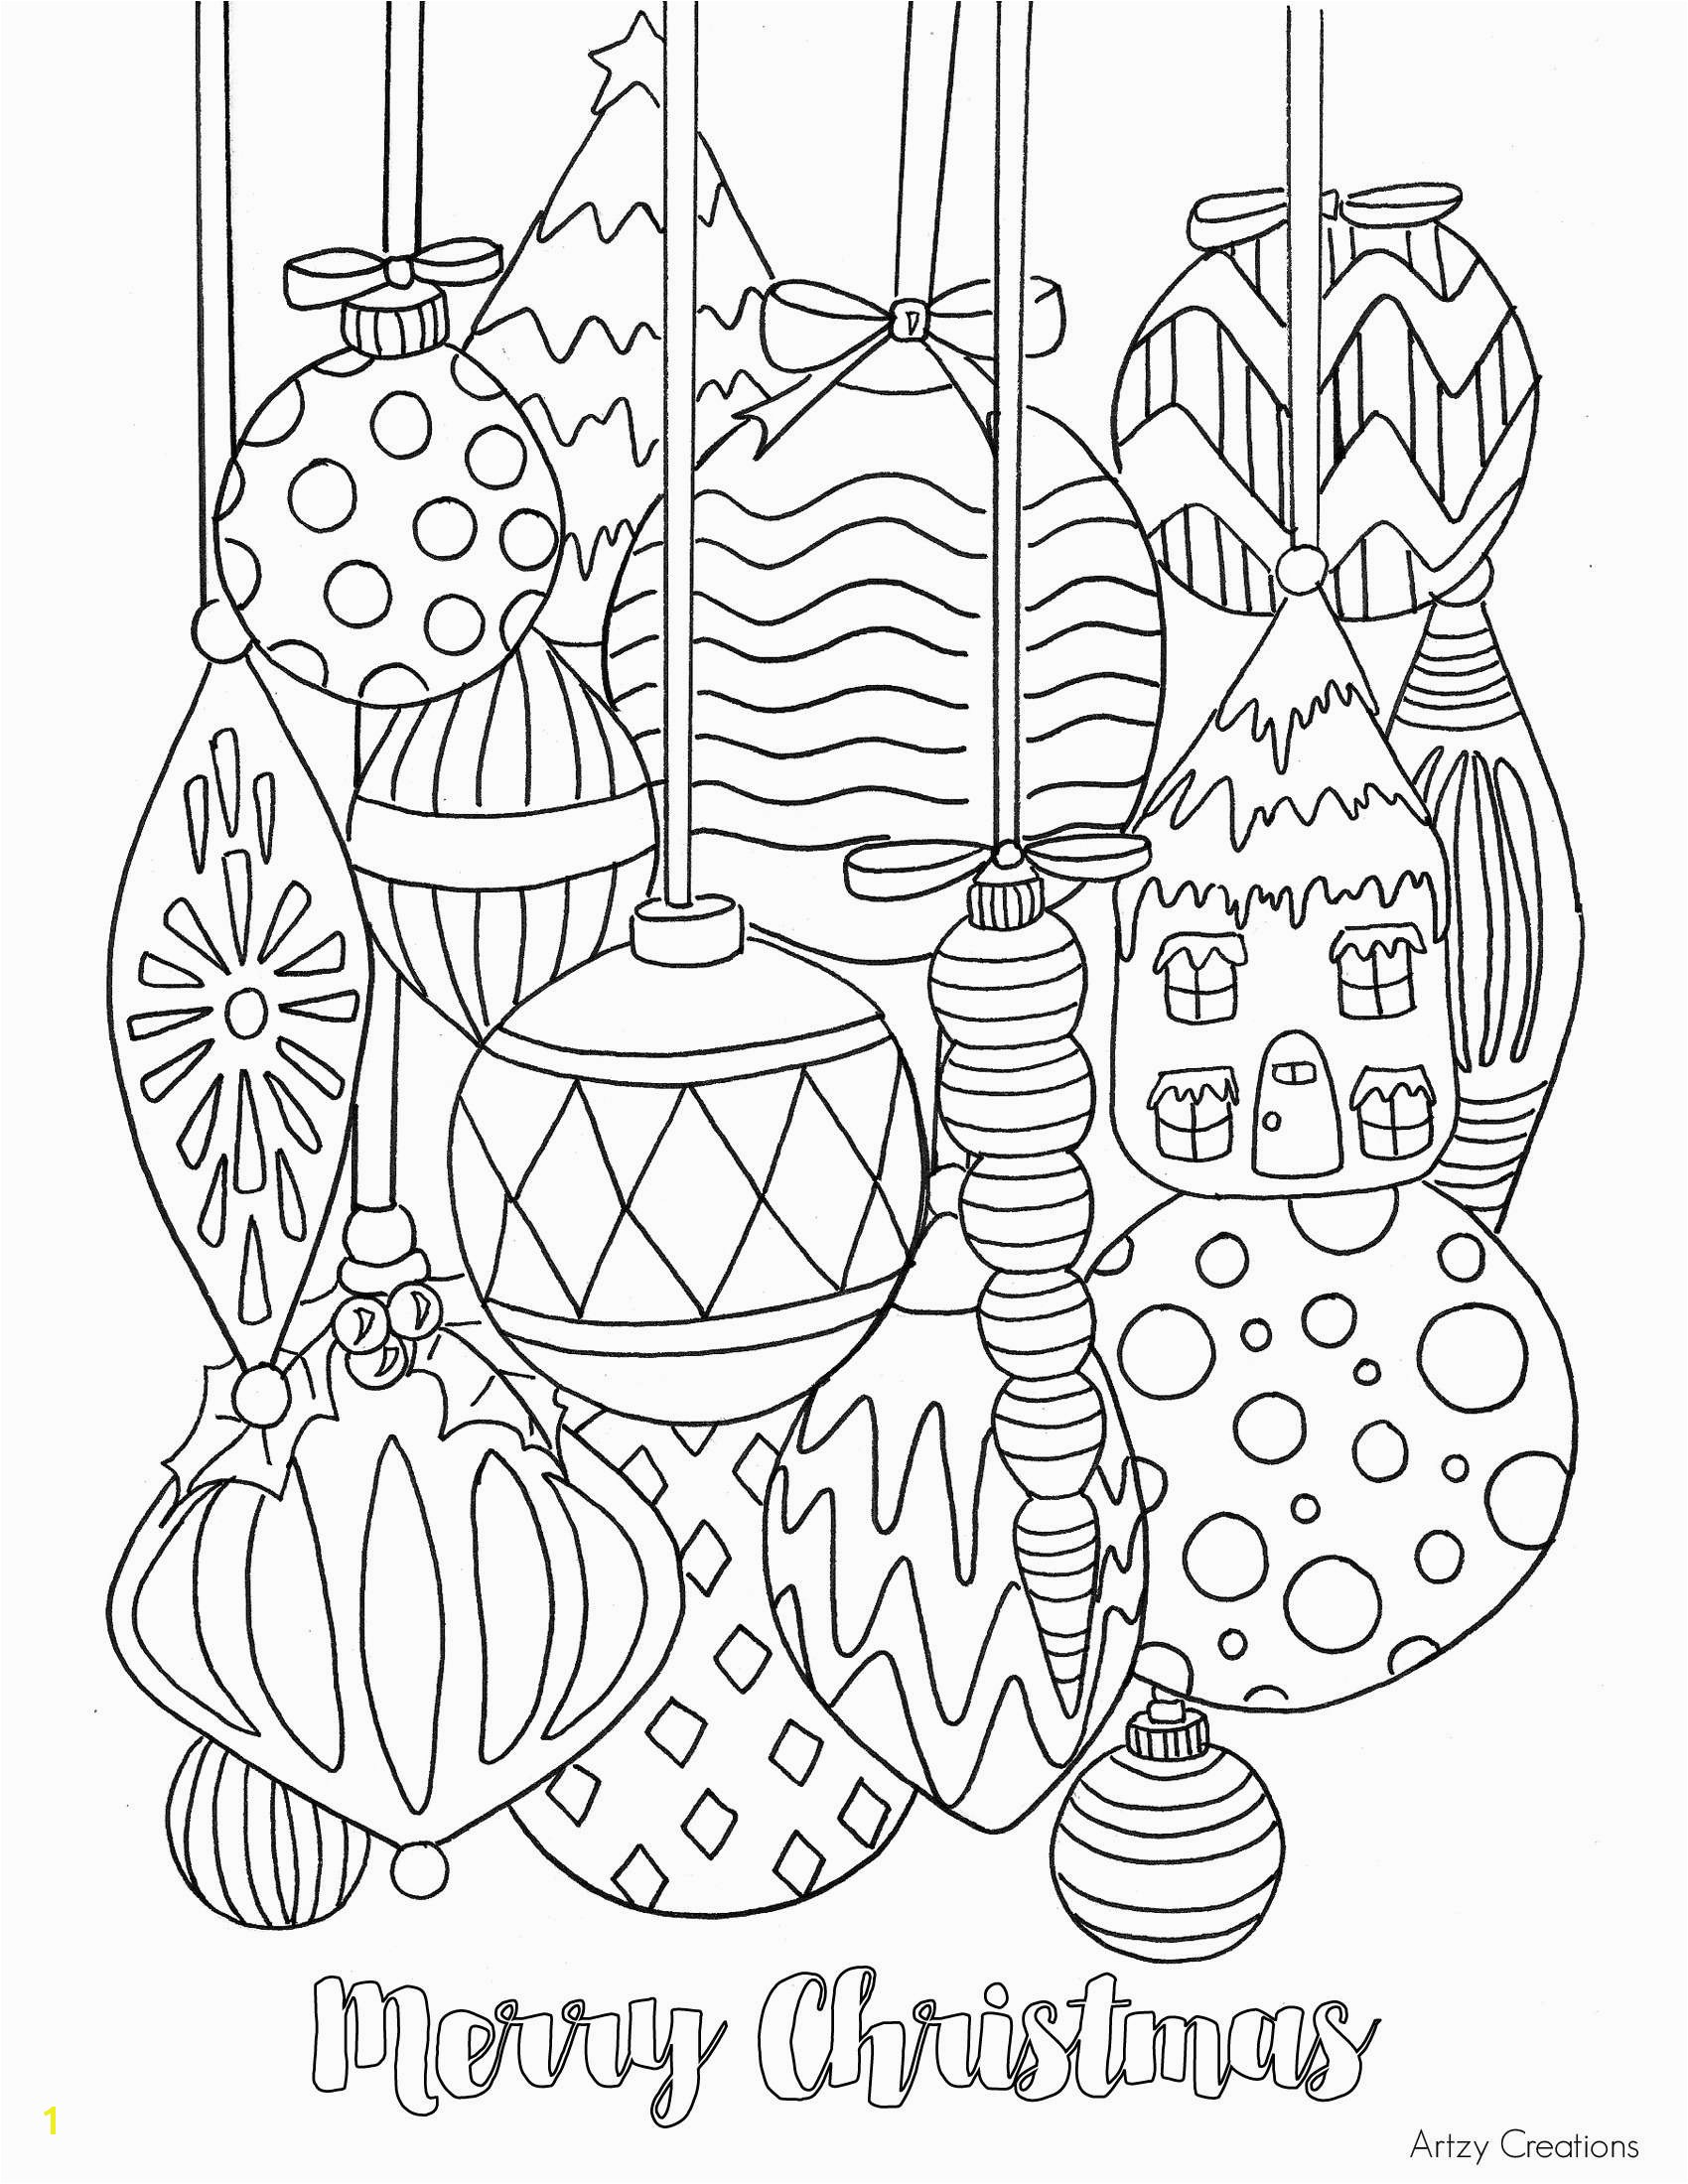 Free Printable Christmas Coloring Pages Free Printable Christmas Best Coloring Page Adult Od Kids Simple